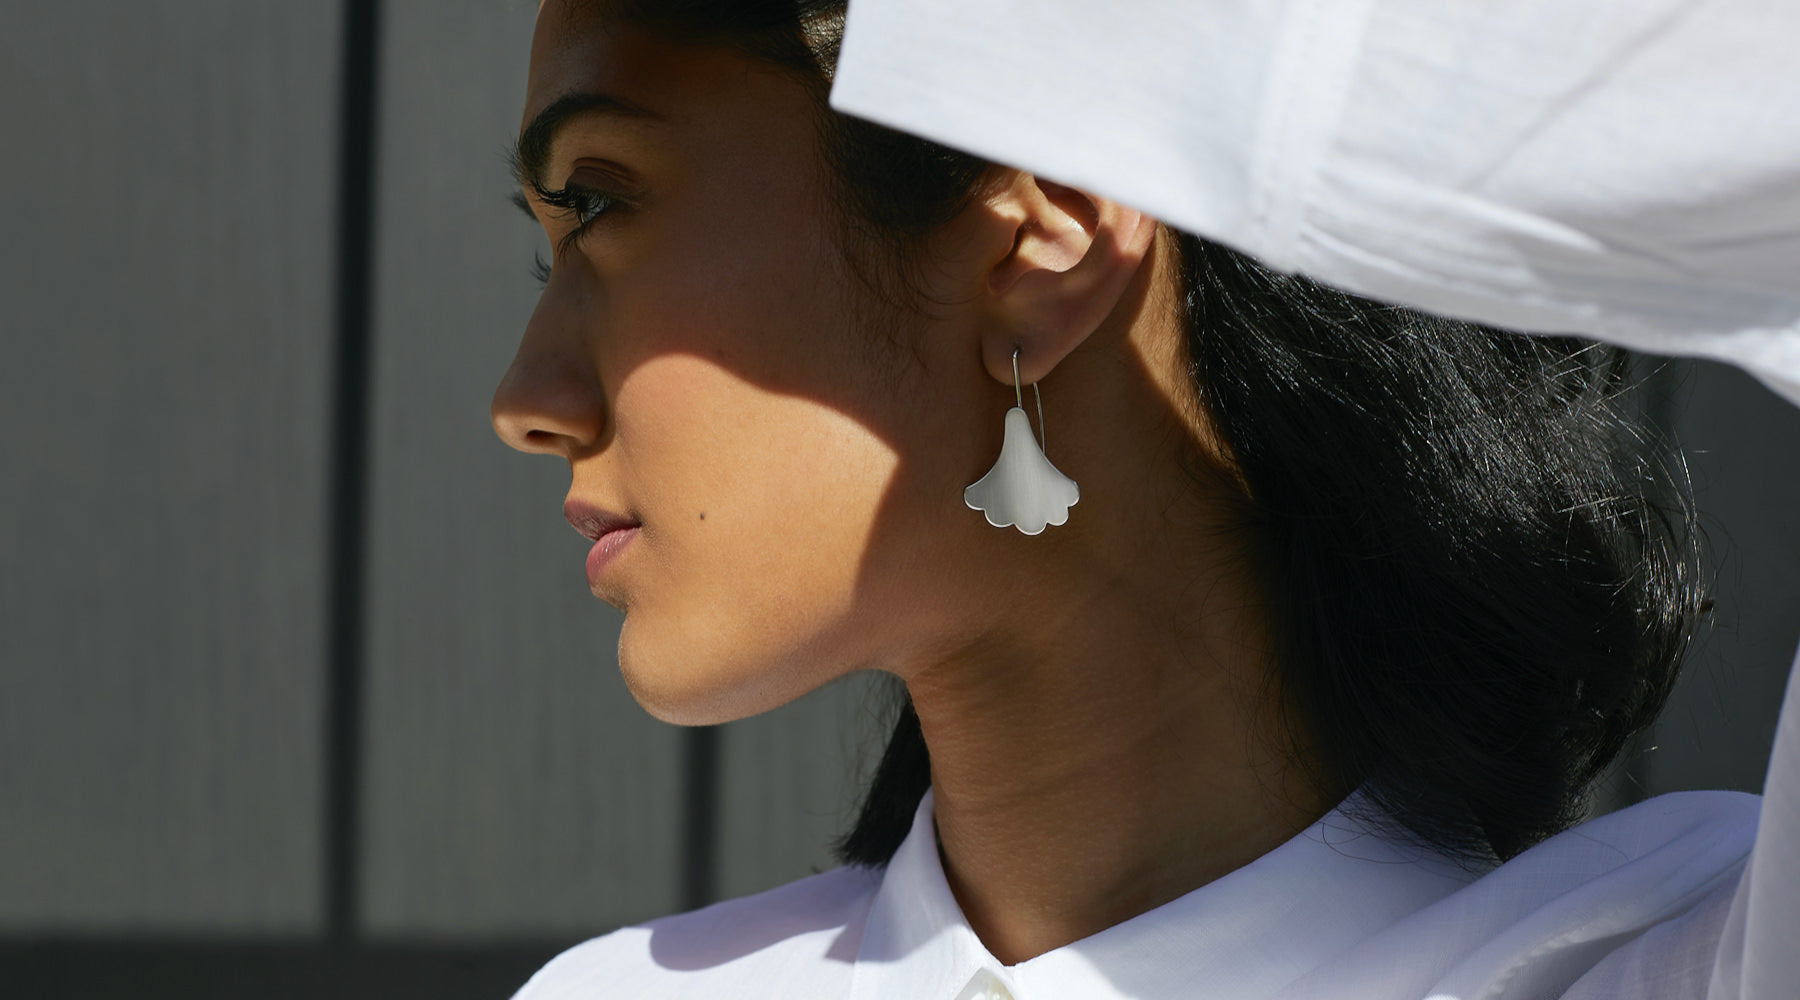 Woman wearing Silver Plume Hook Earrings from Brave Edith